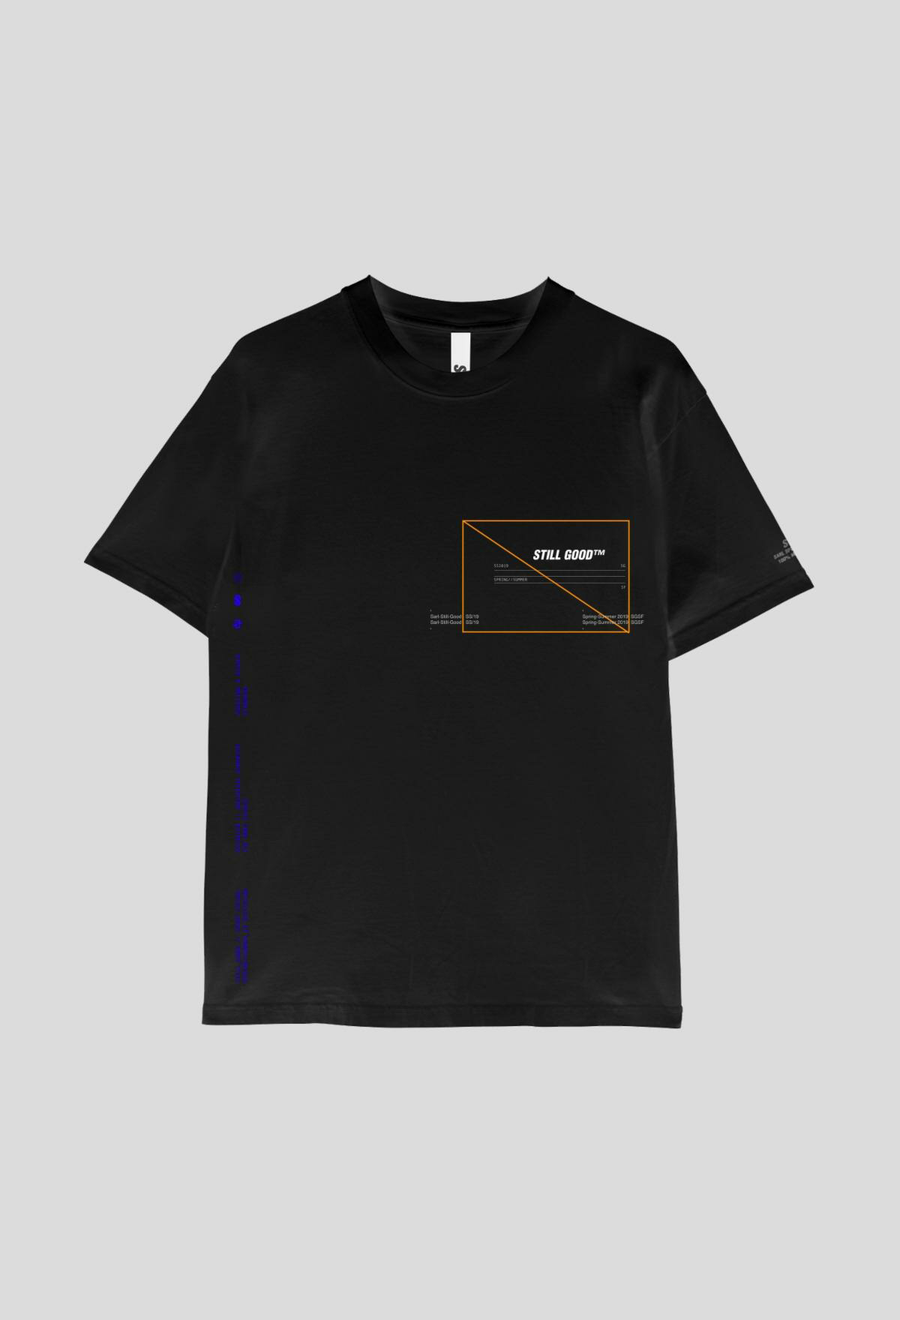 Texture Tee Black / XS | Still Good